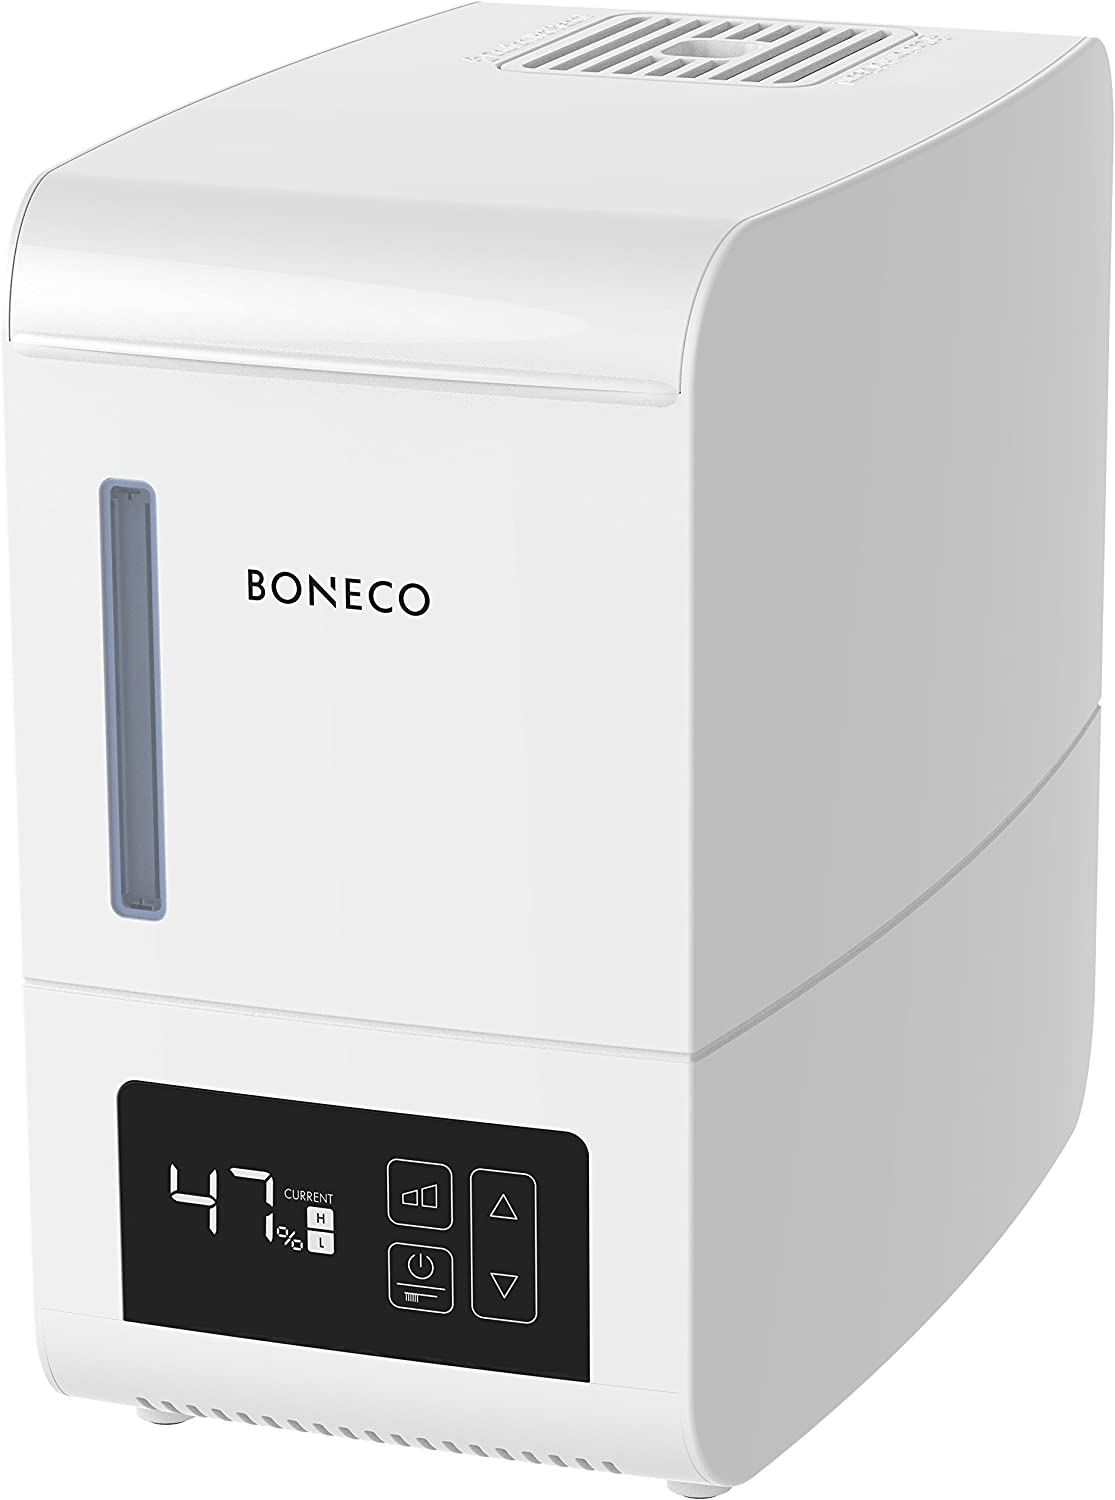 BONECO Digital Steam Humidifier S250 w/Cleaning Mode